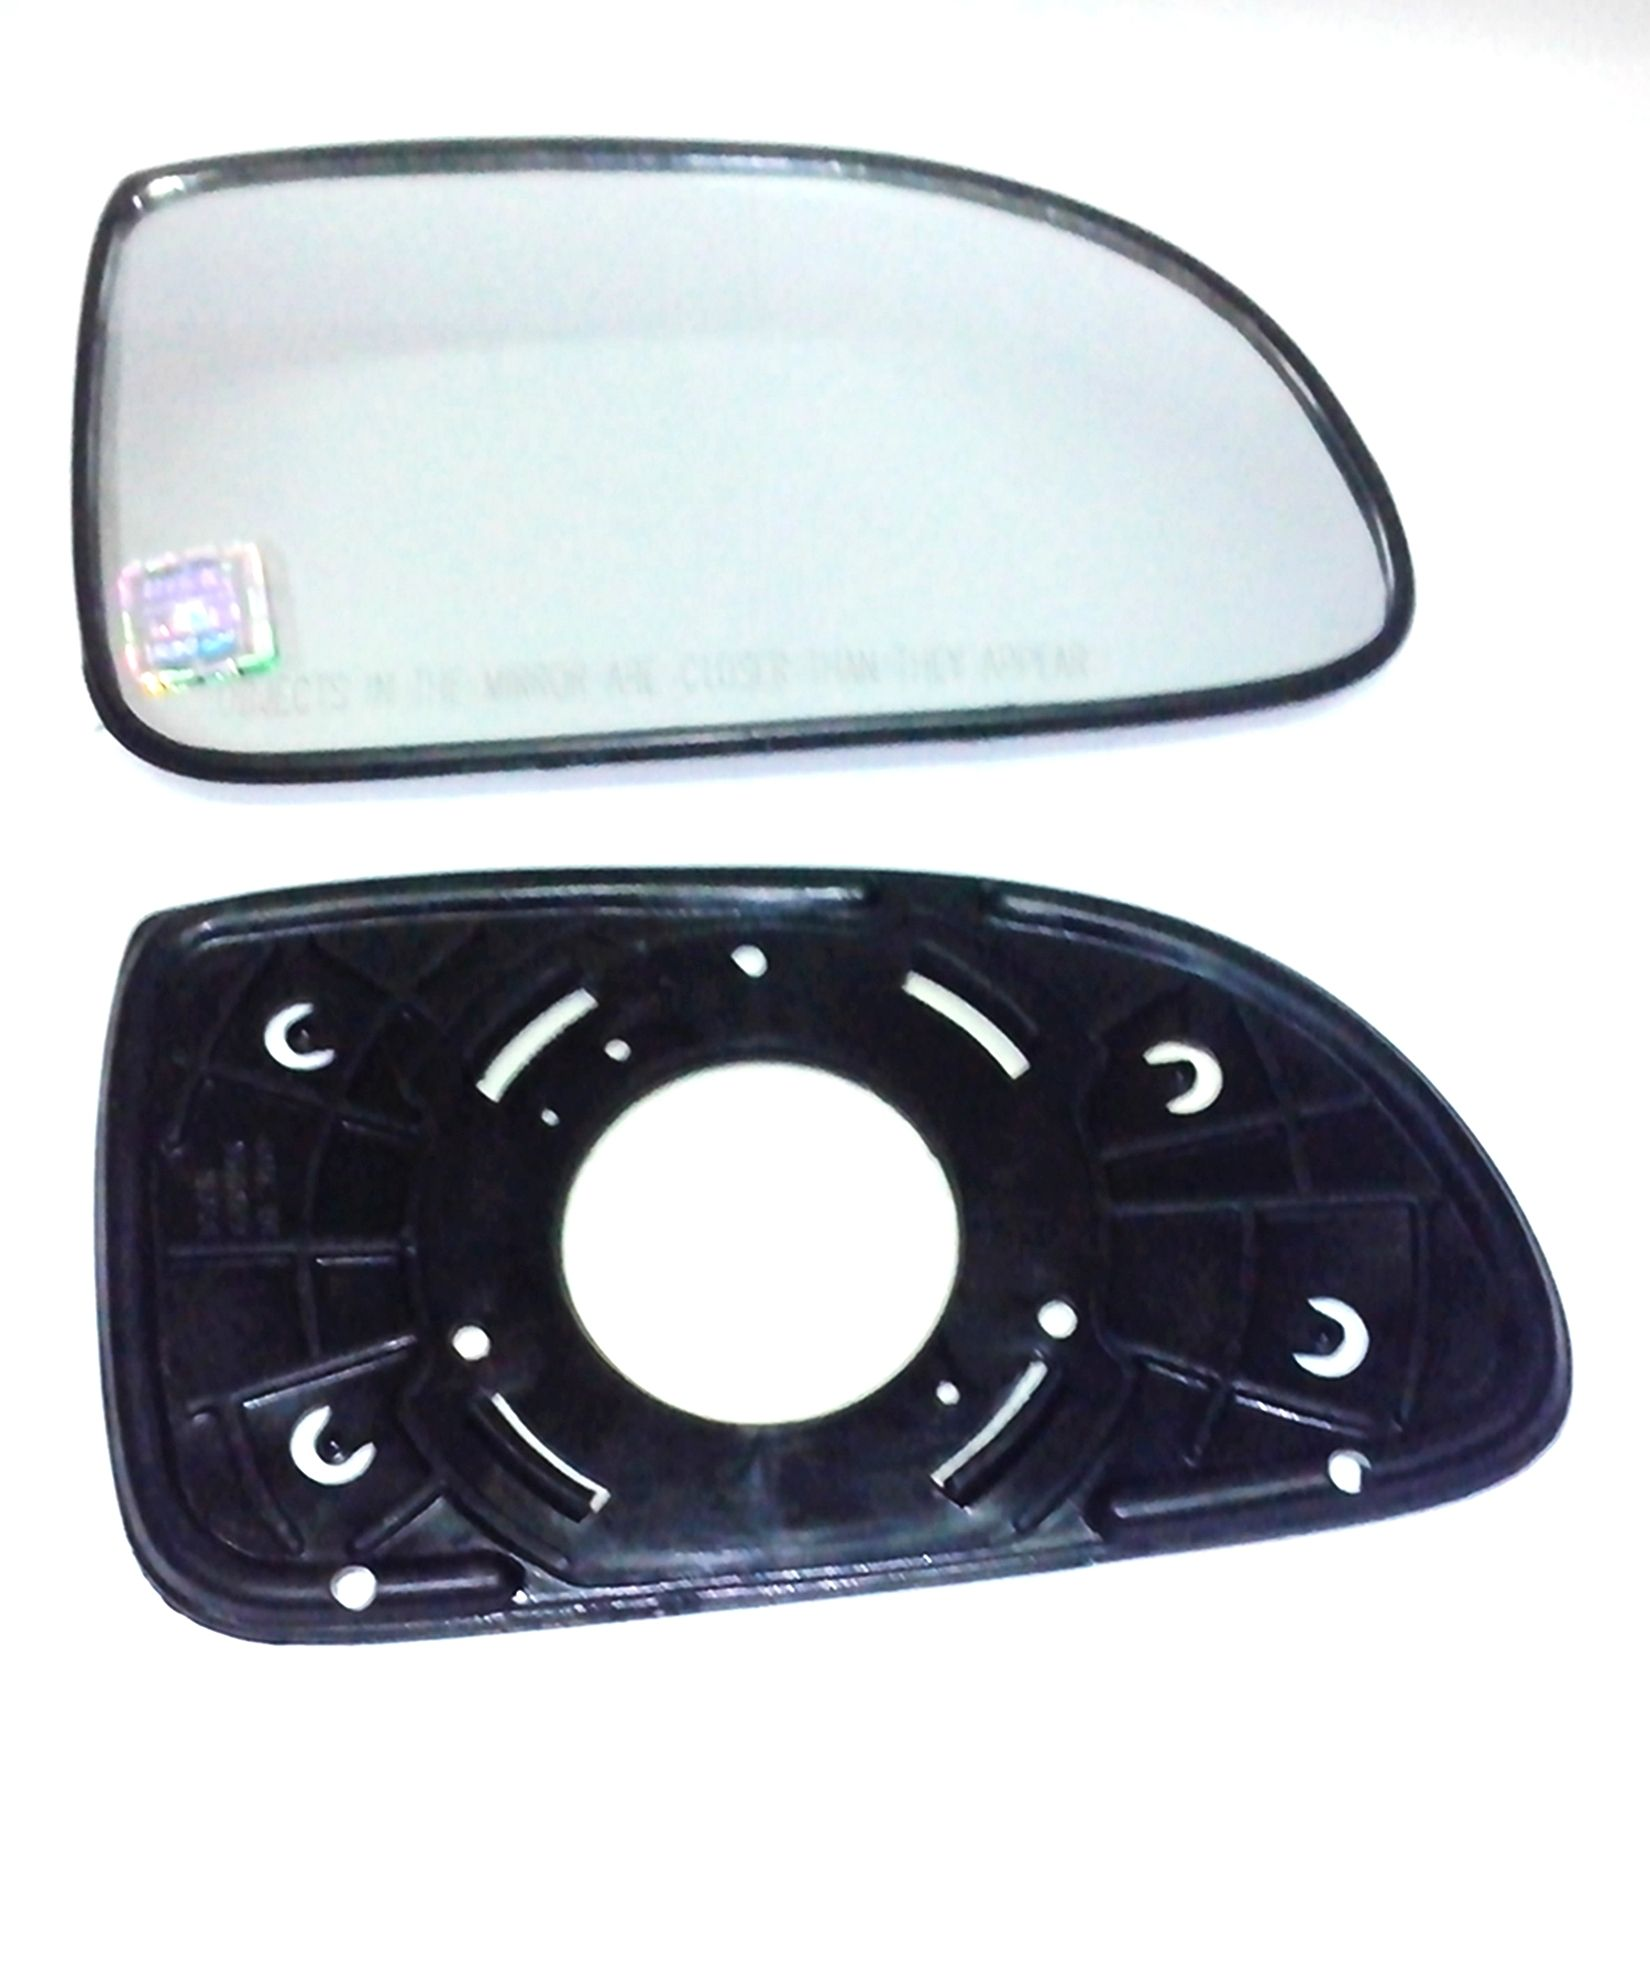 MANTRA-CONVEX MIRROR PLATES (SUB MIRROR PLATES) FOR HONDA CIVIC LEFT SIDE